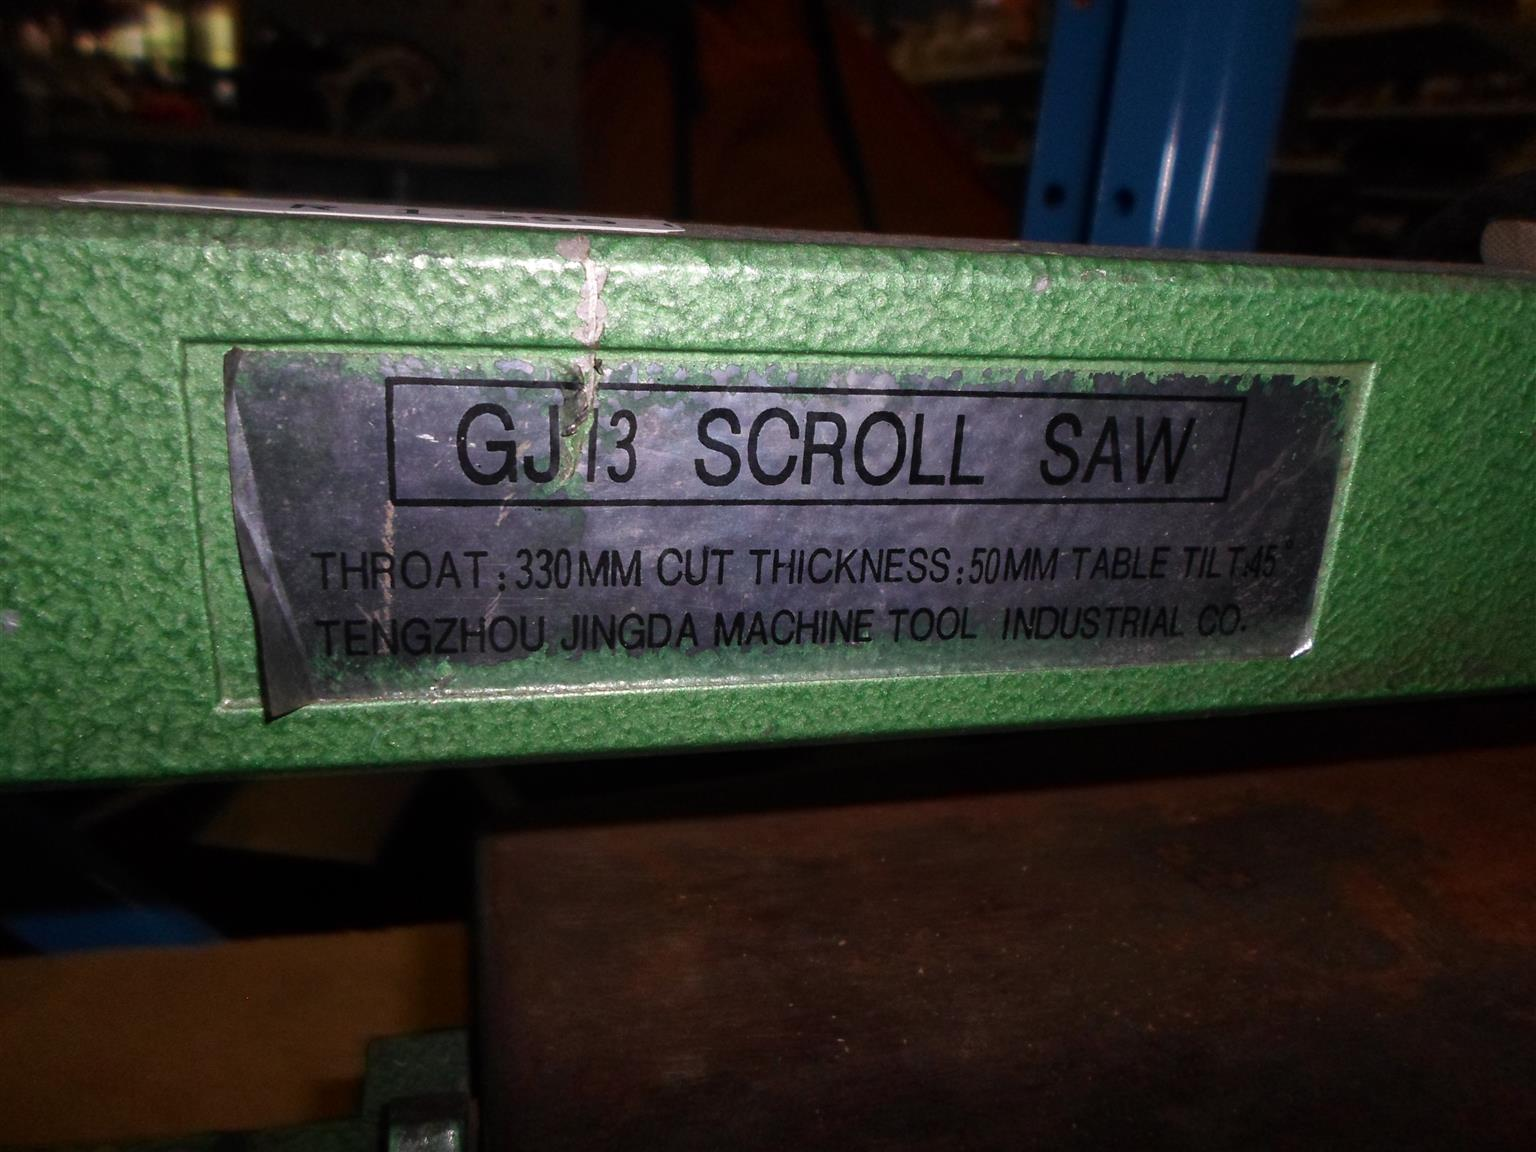 GJ 13 Scroll Saw